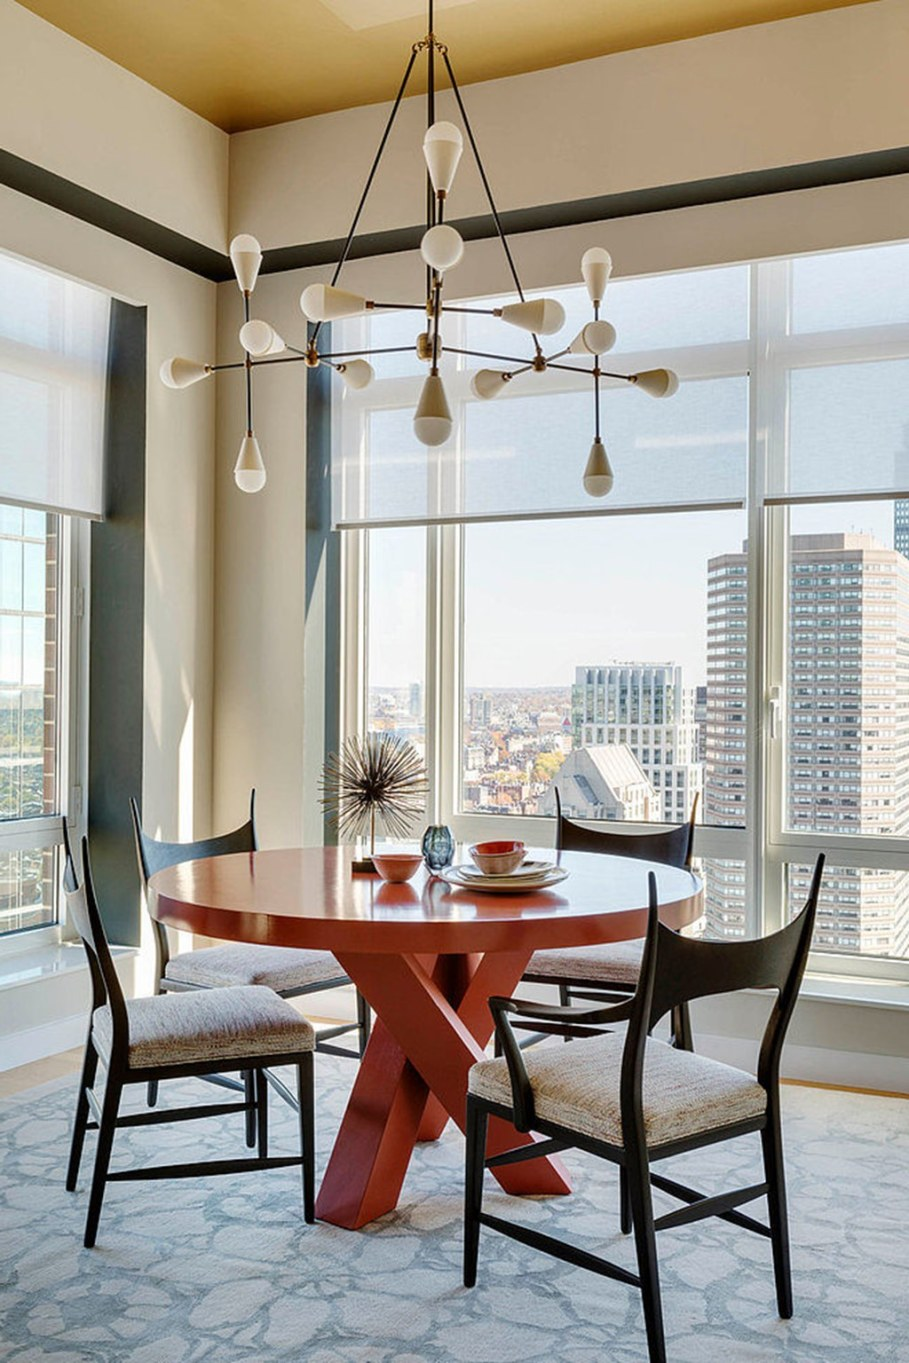 Modern apartment with three bedrooms decorated in eclectic style - Round dining table